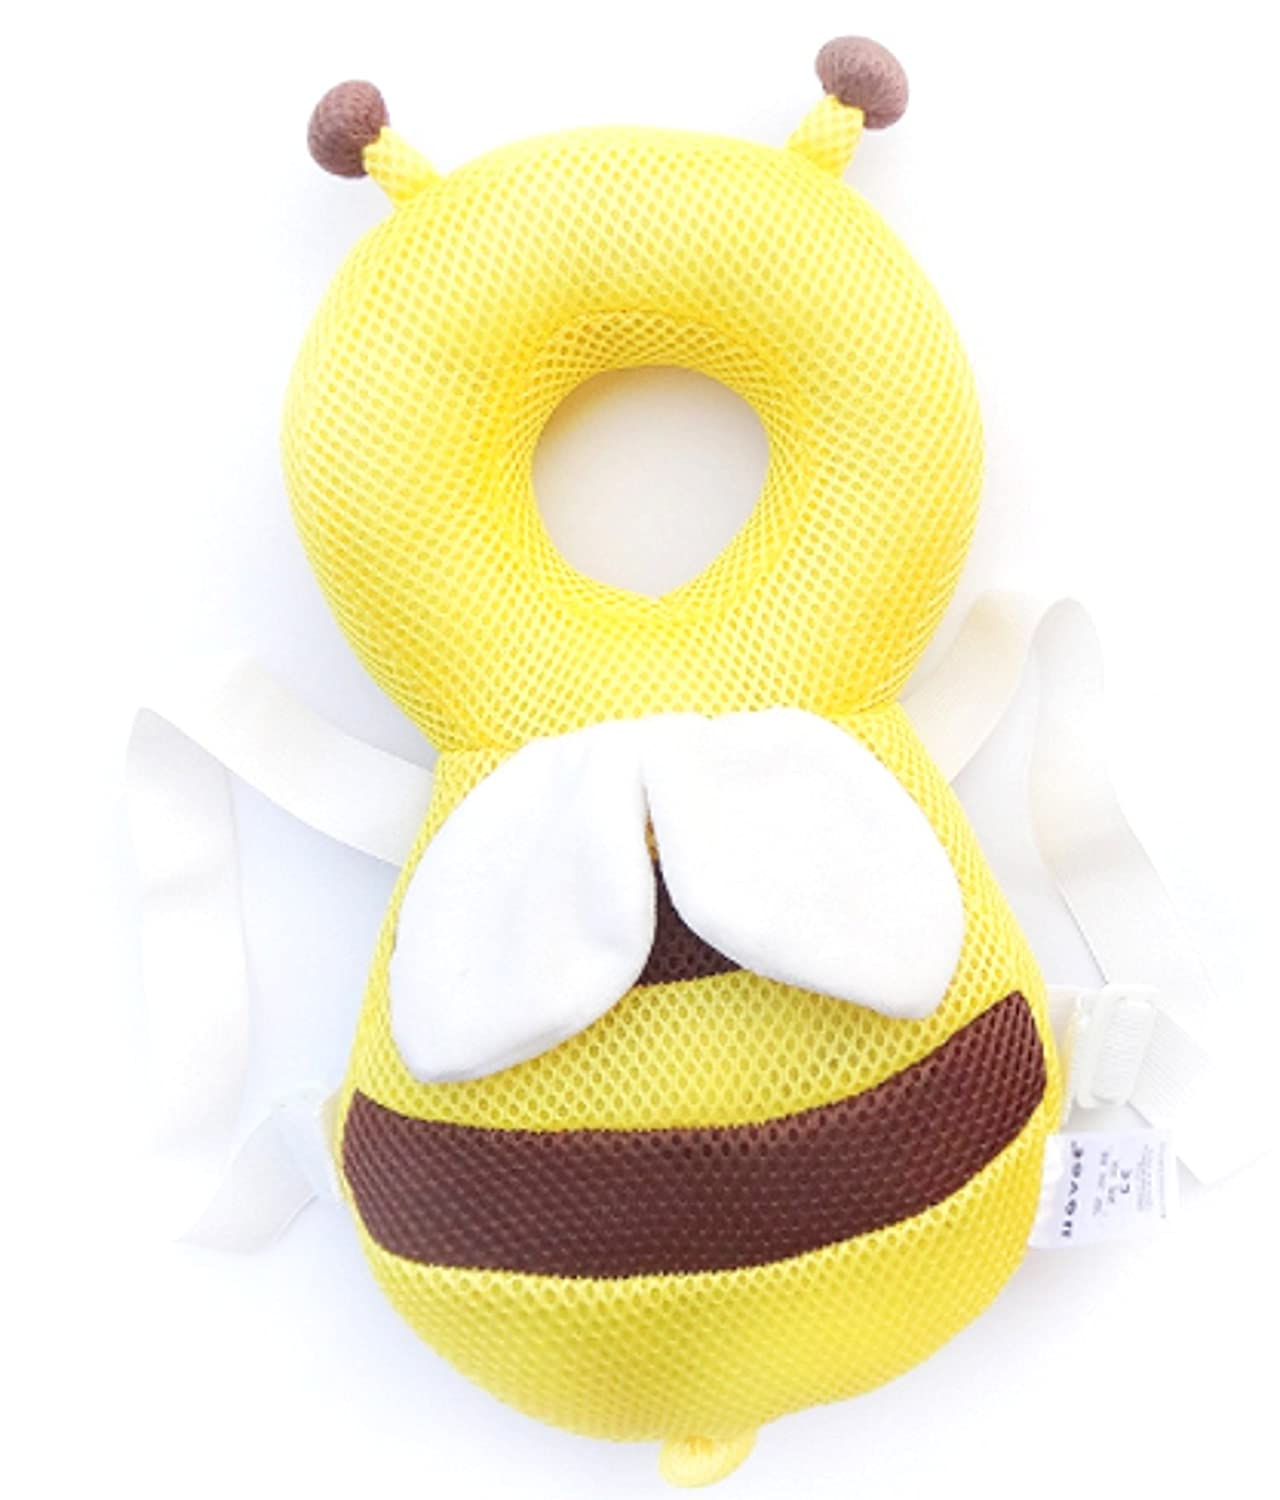 Mother & Kids Honey Baby Pillow Safety Seat Belt Harness Shoulder Pad Cover Children Protection Covers Cushion Support Strollers Accessories